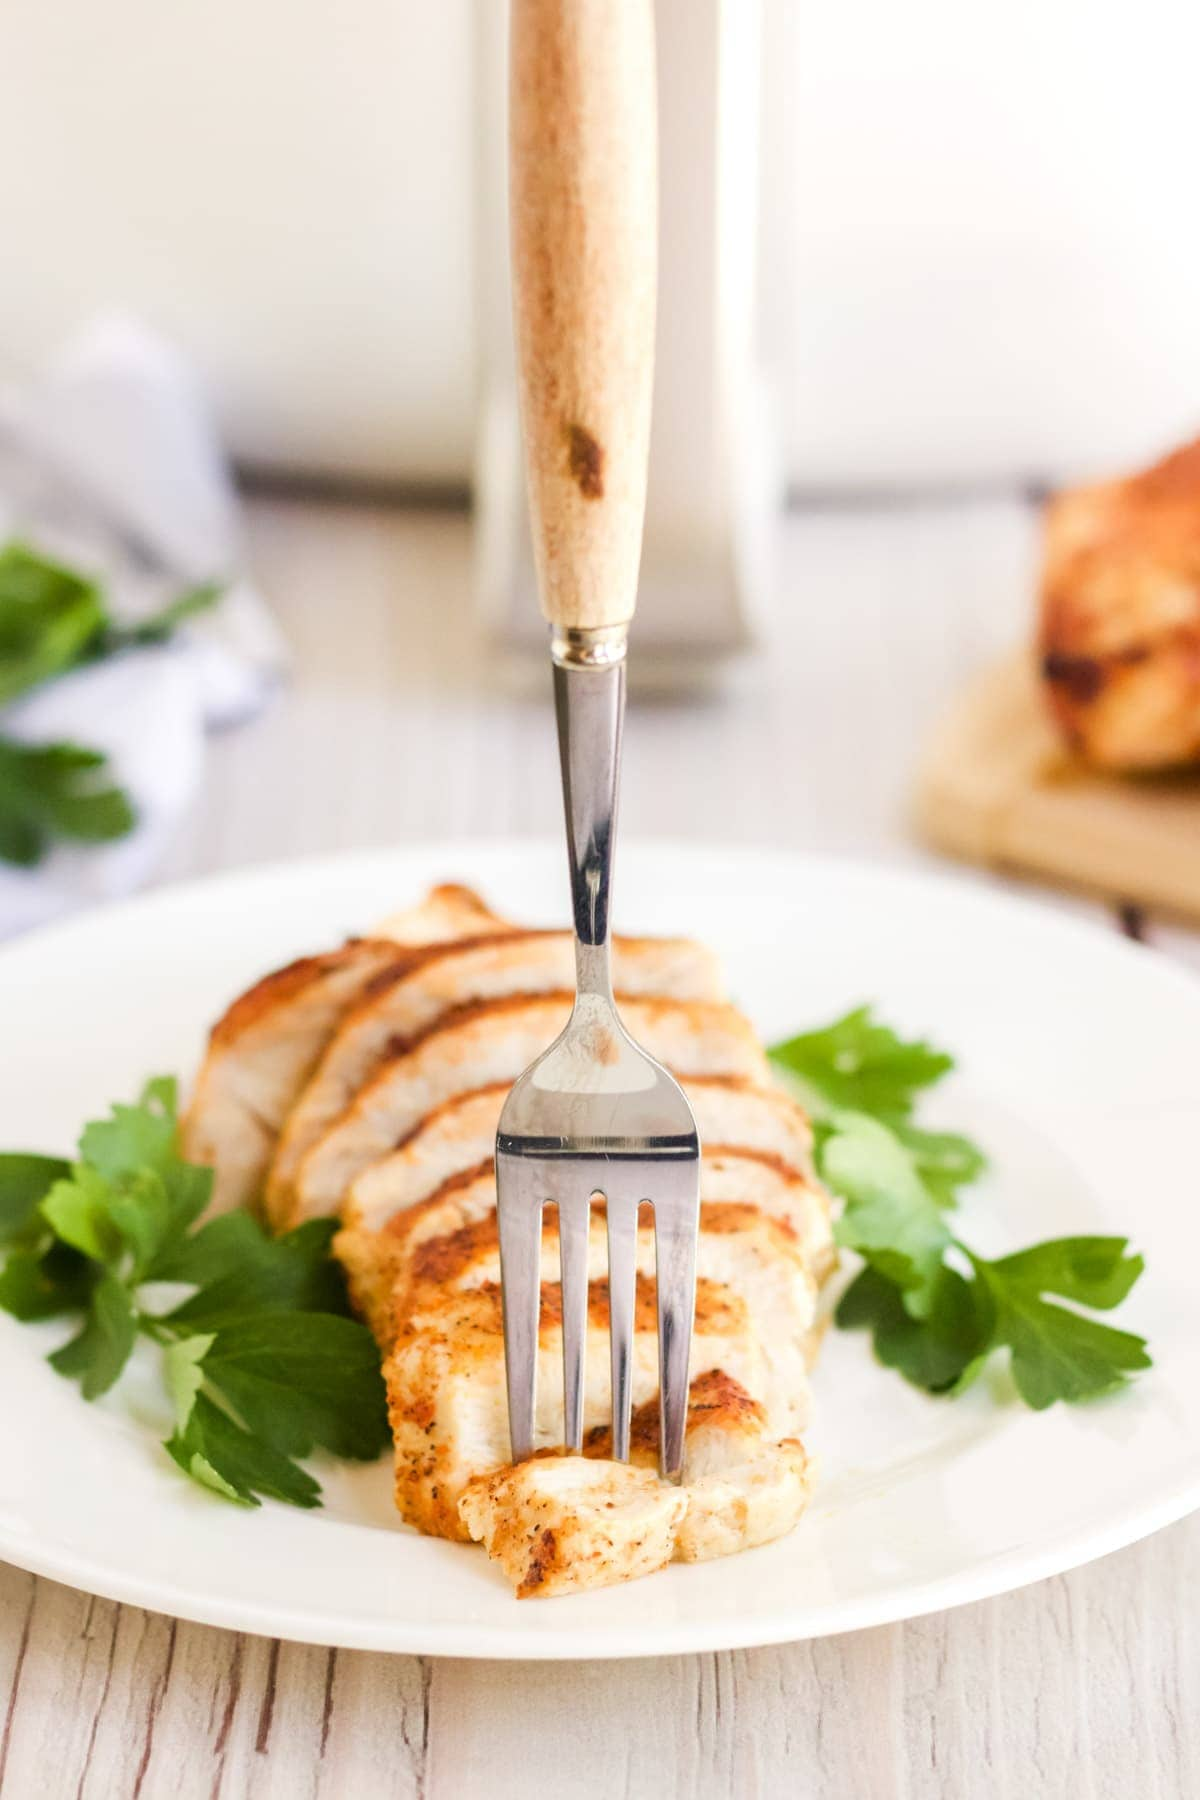 sliced chicken breast on a whilte plate with parsley and a fork